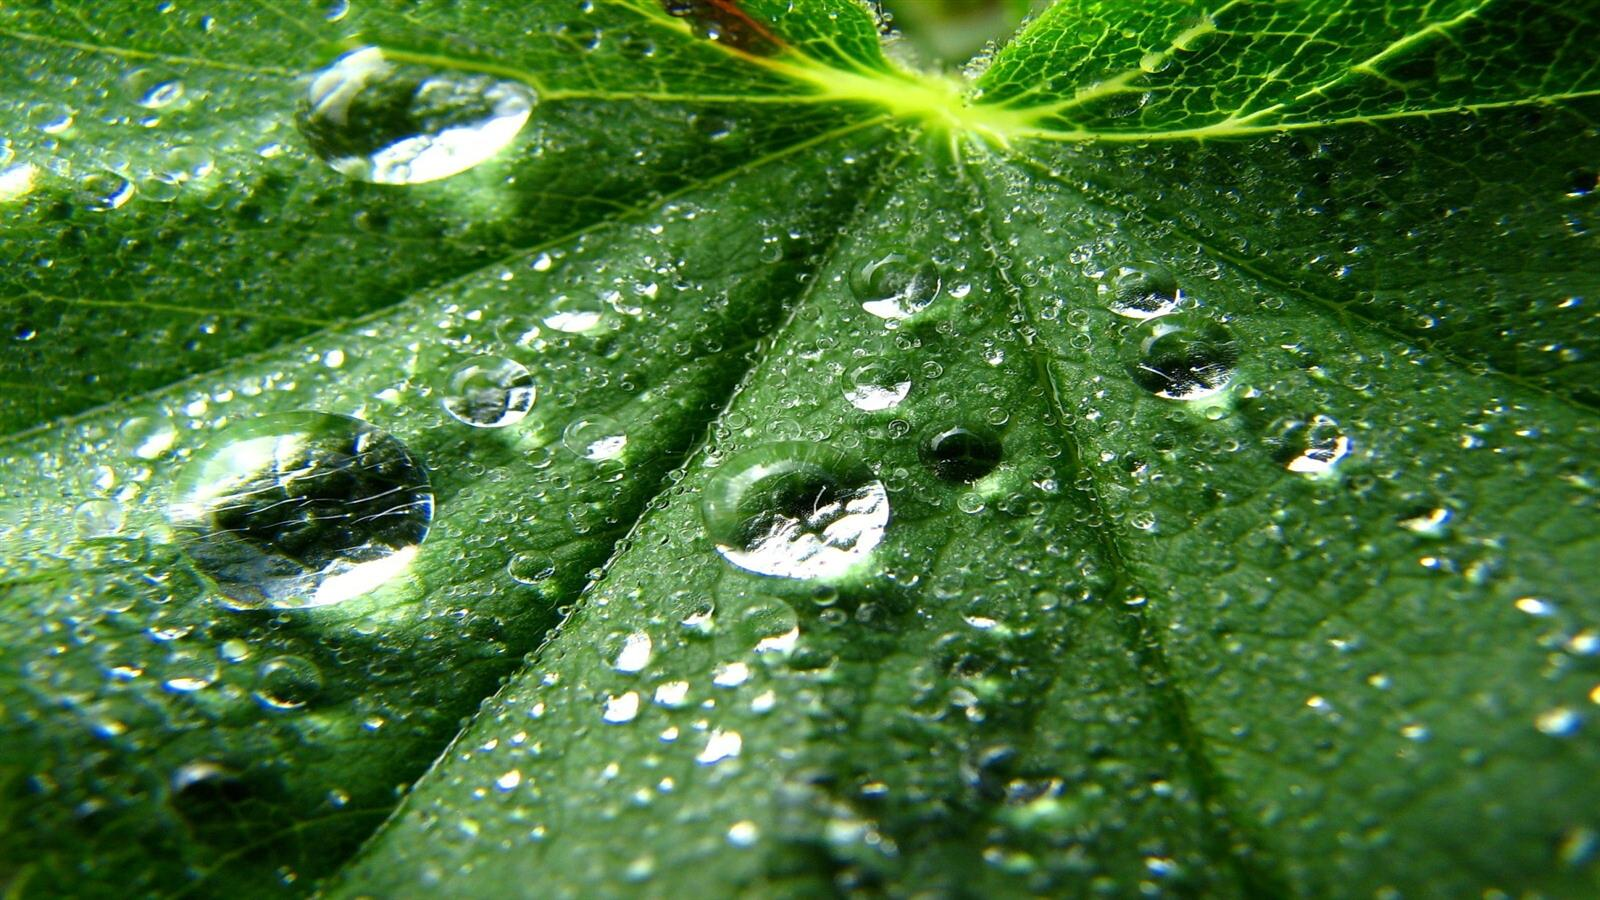 1600x900 Water Drops on Leaf 3D Pic